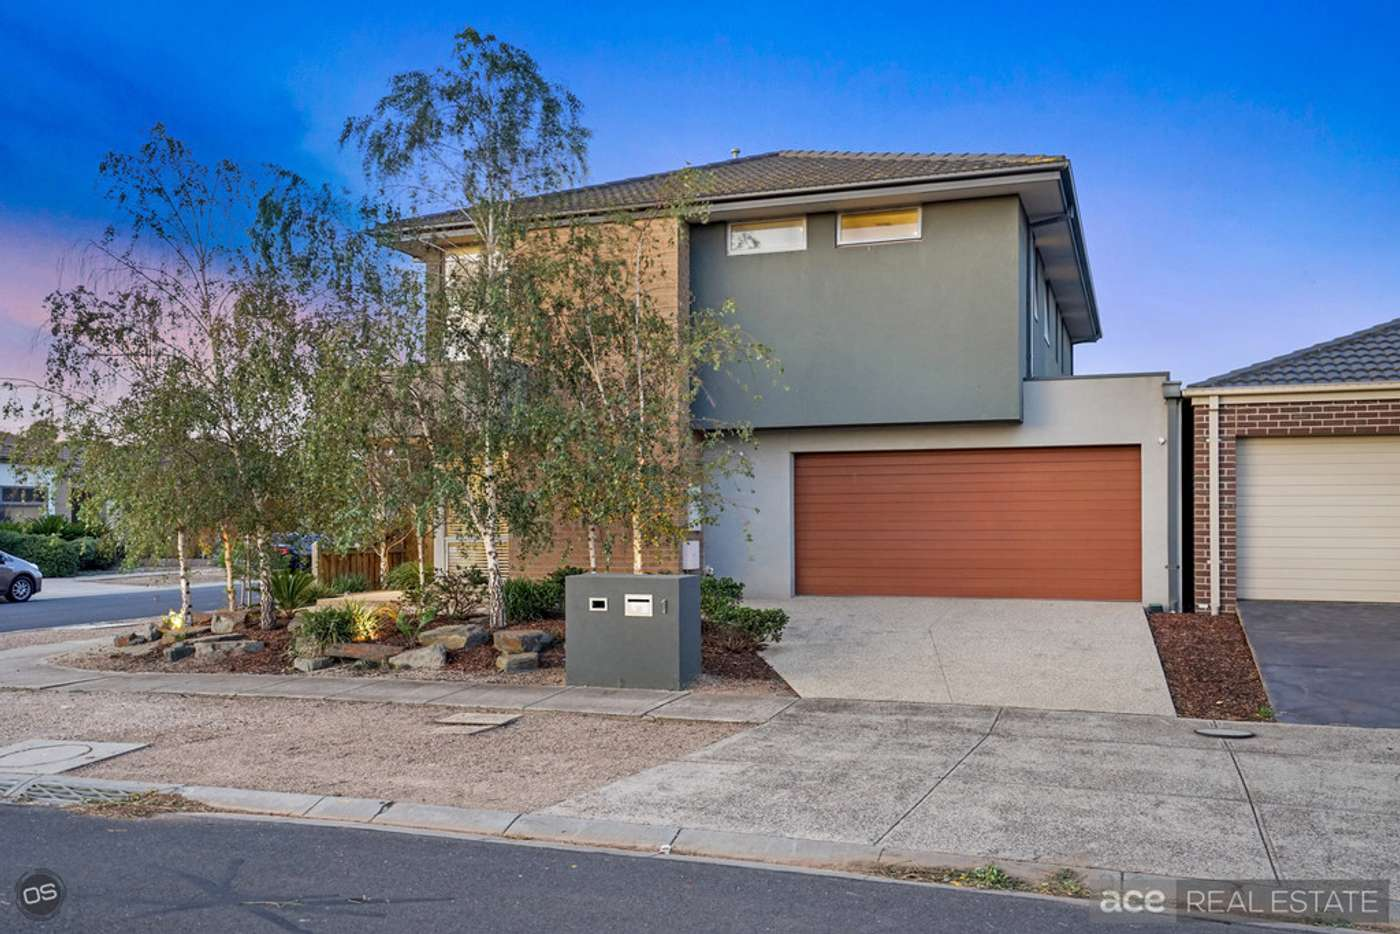 Main view of Homely house listing, 1 Calypso Cres, Point Cook VIC 3030